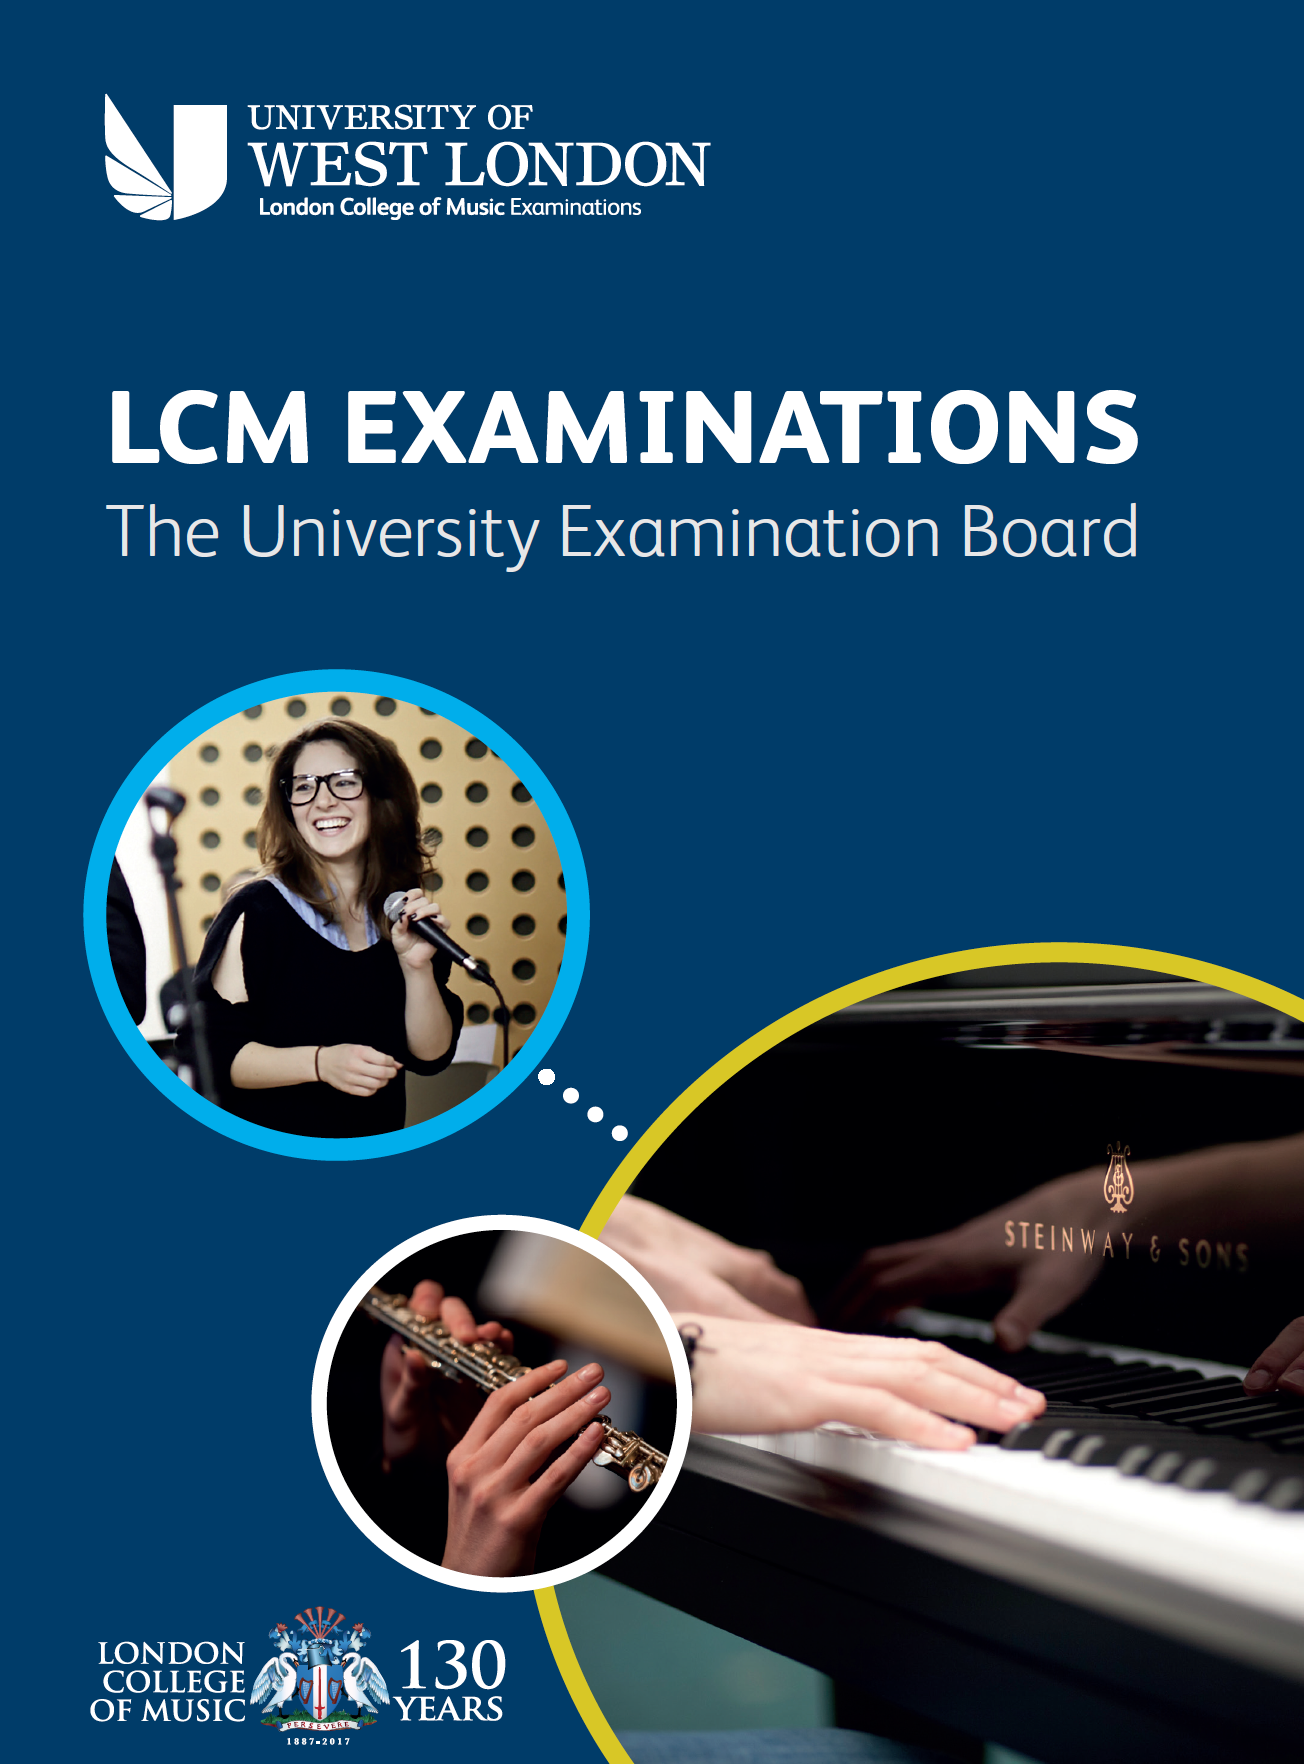 london college of music examinations  u2013 download brochure  u2013 lui